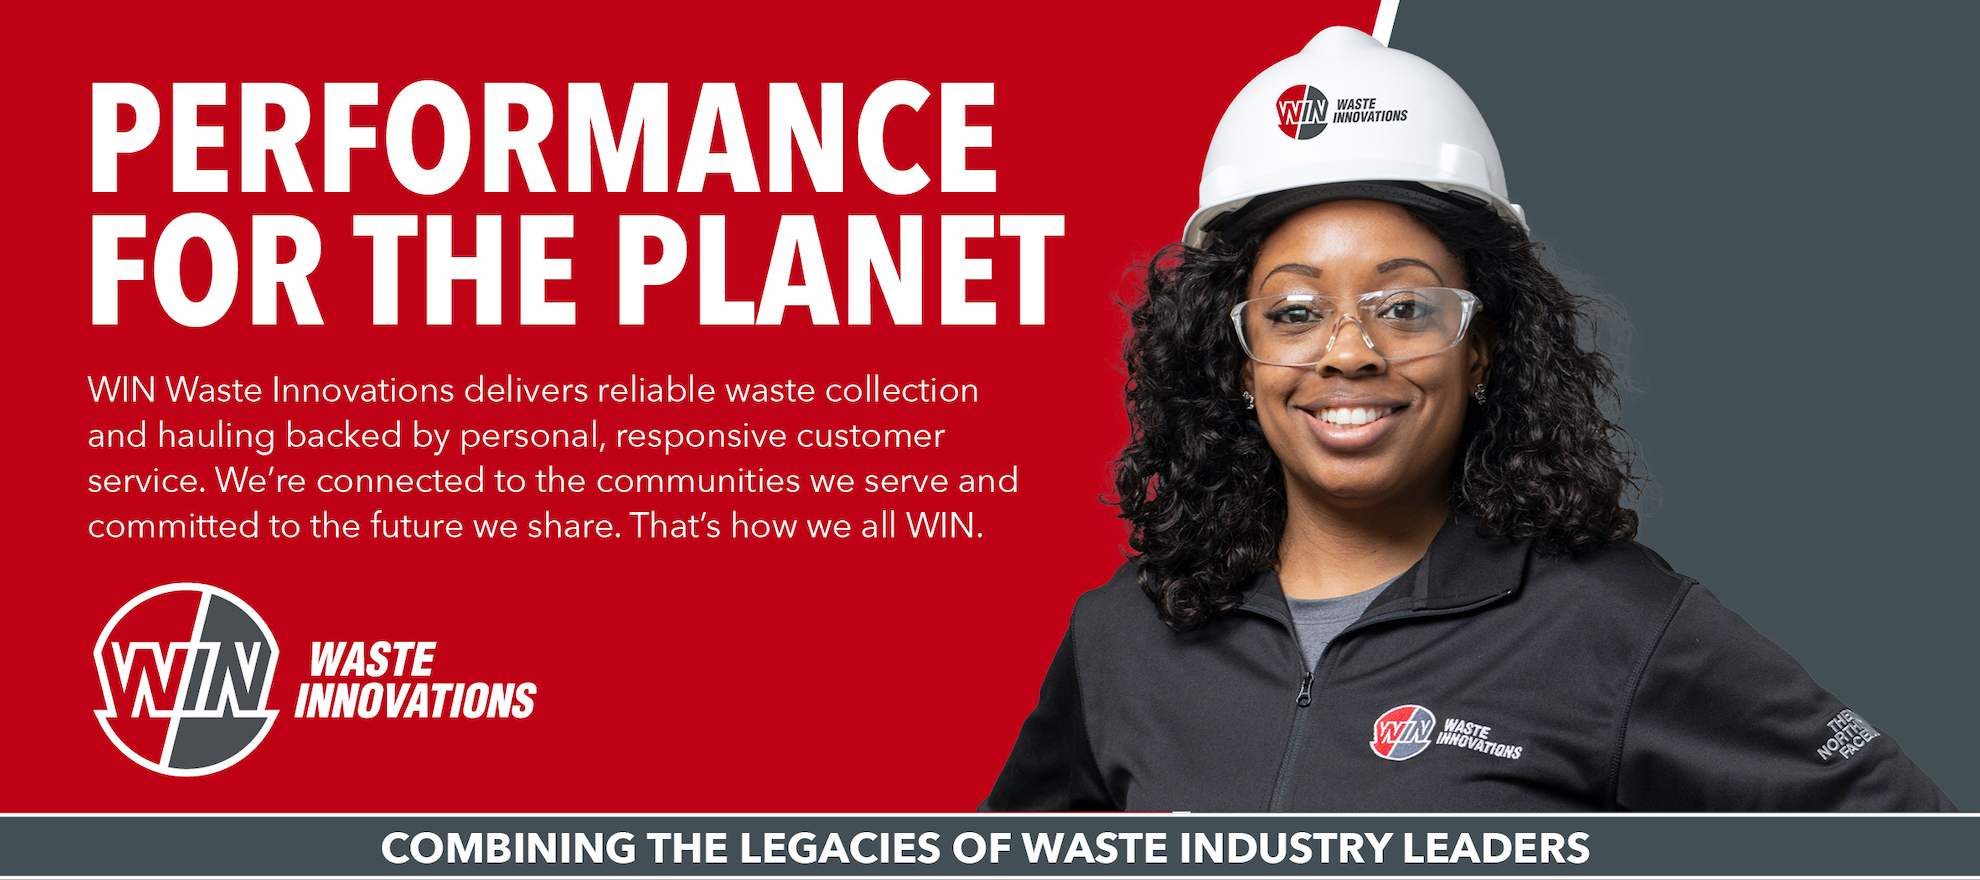 WIN Waste Innovations delivers reliable waste collection and hauling.